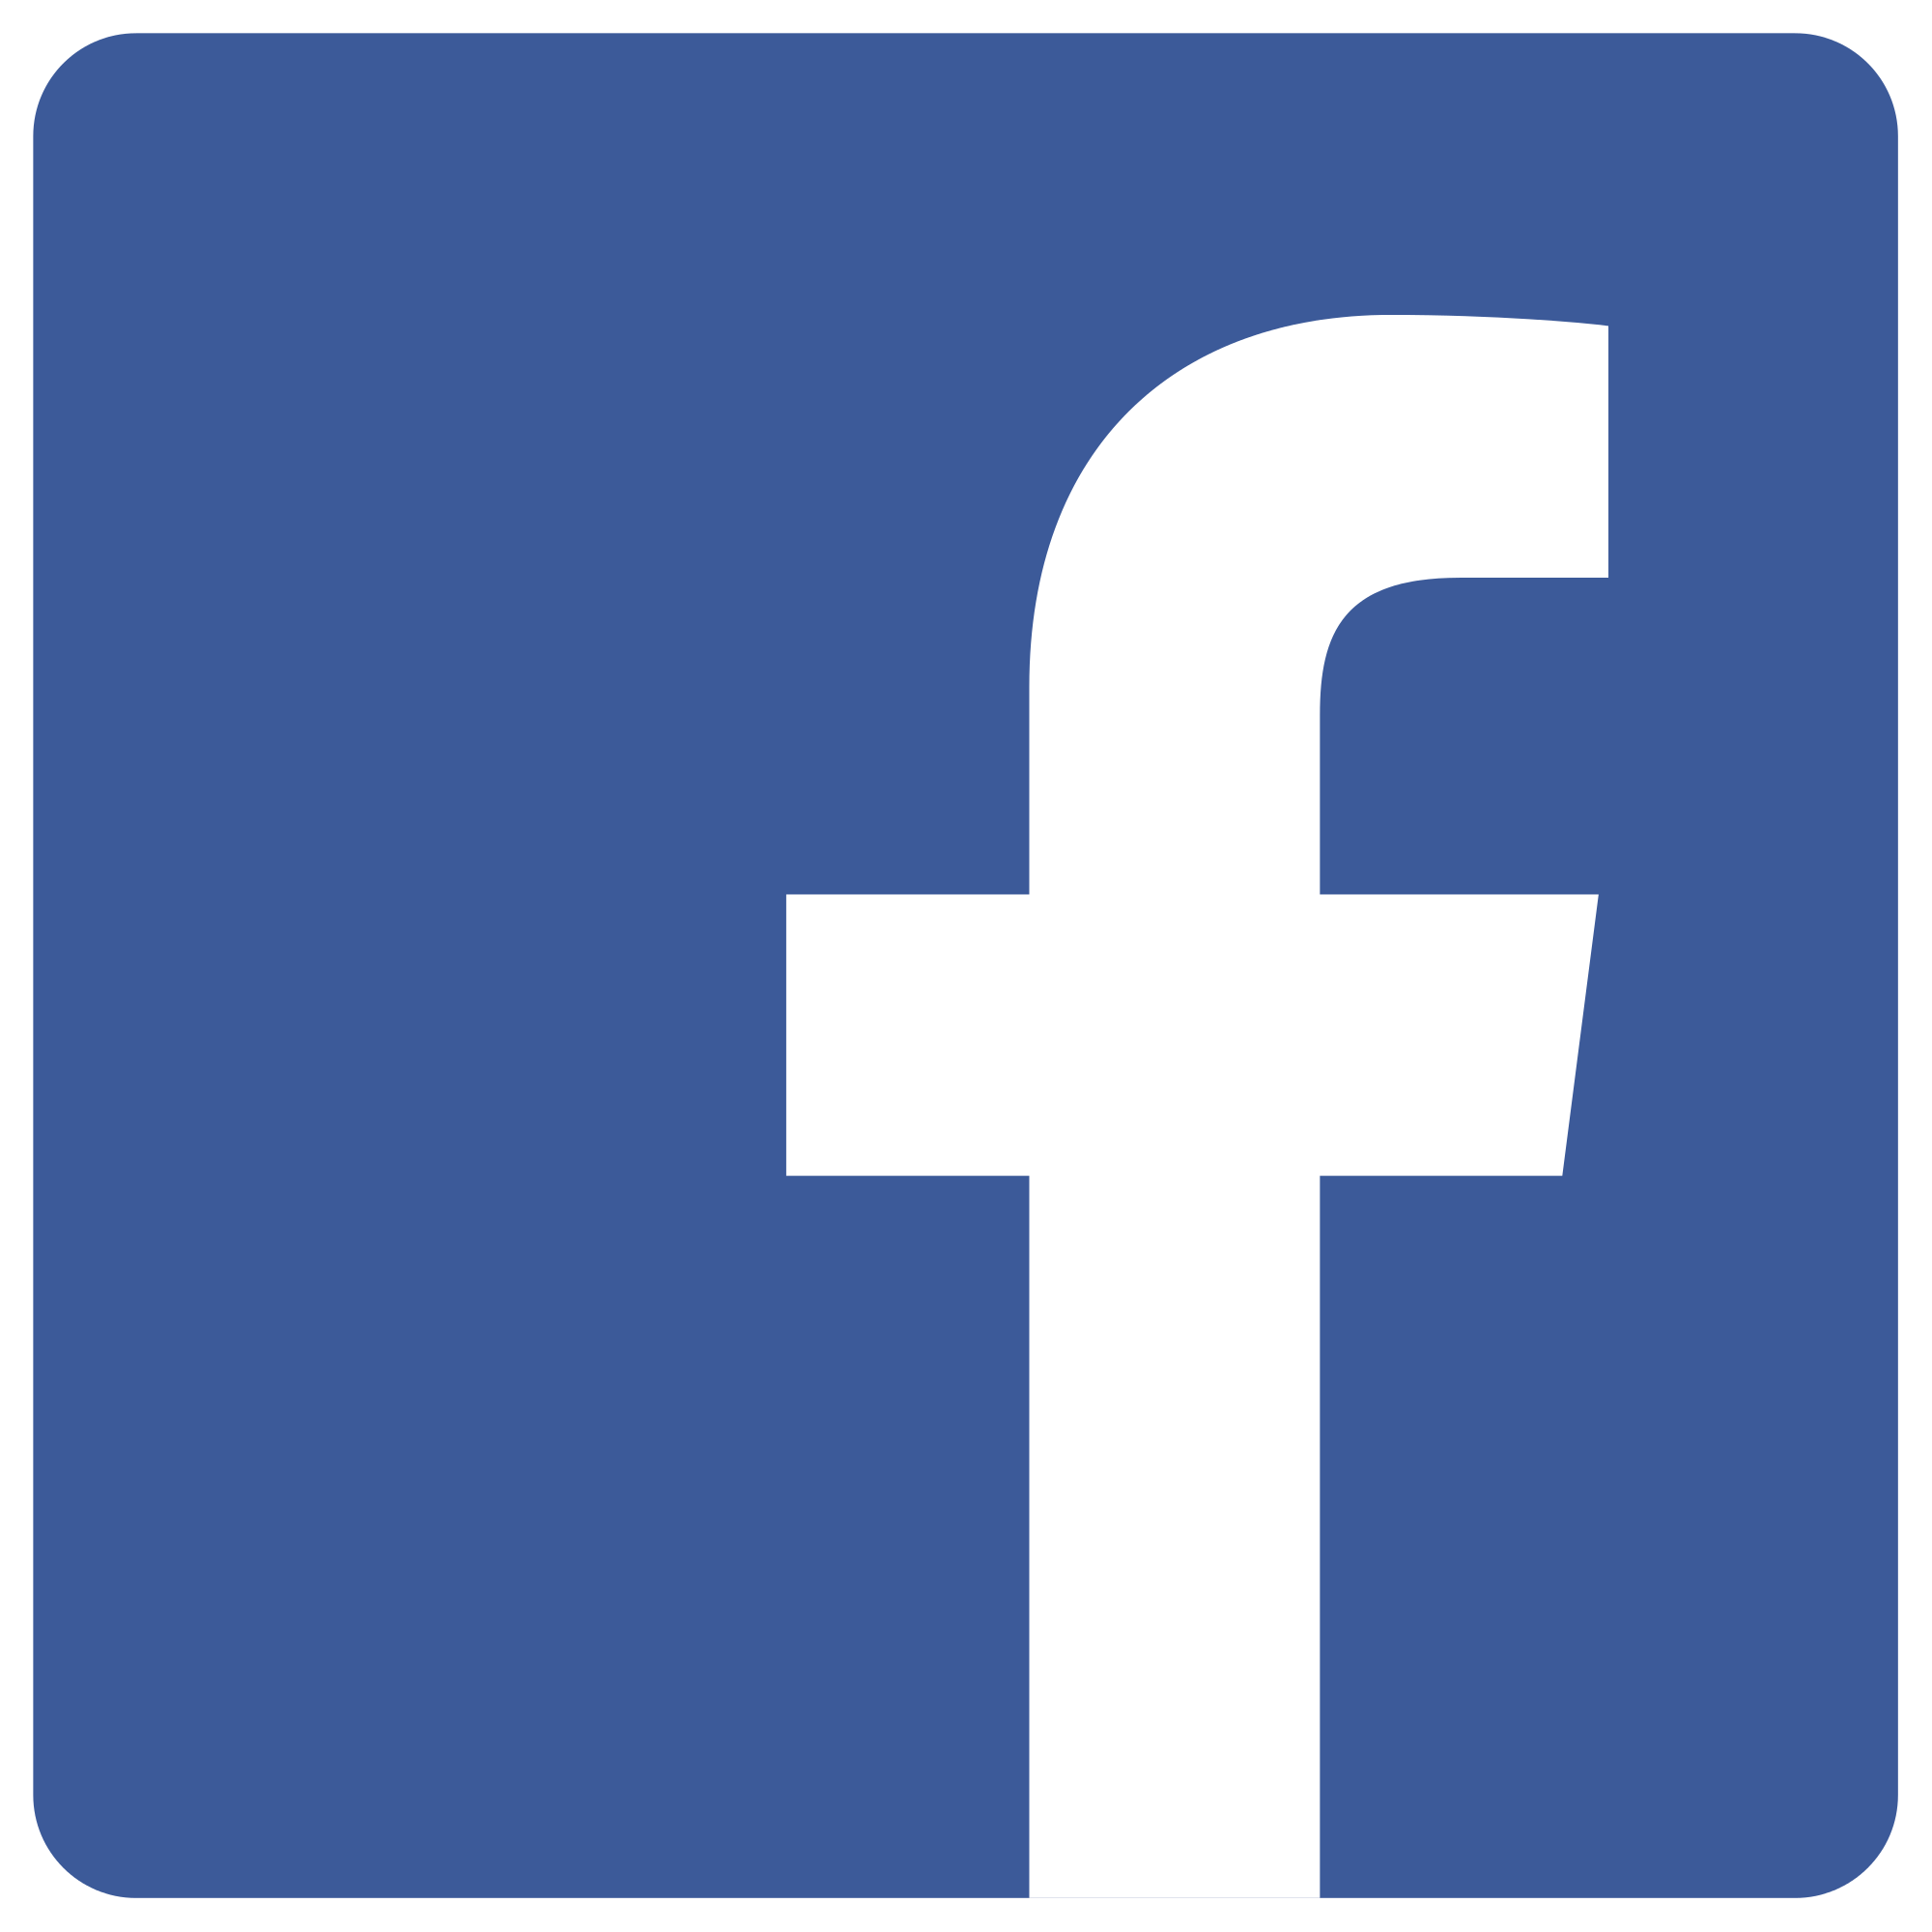 Image result for facebook logo png